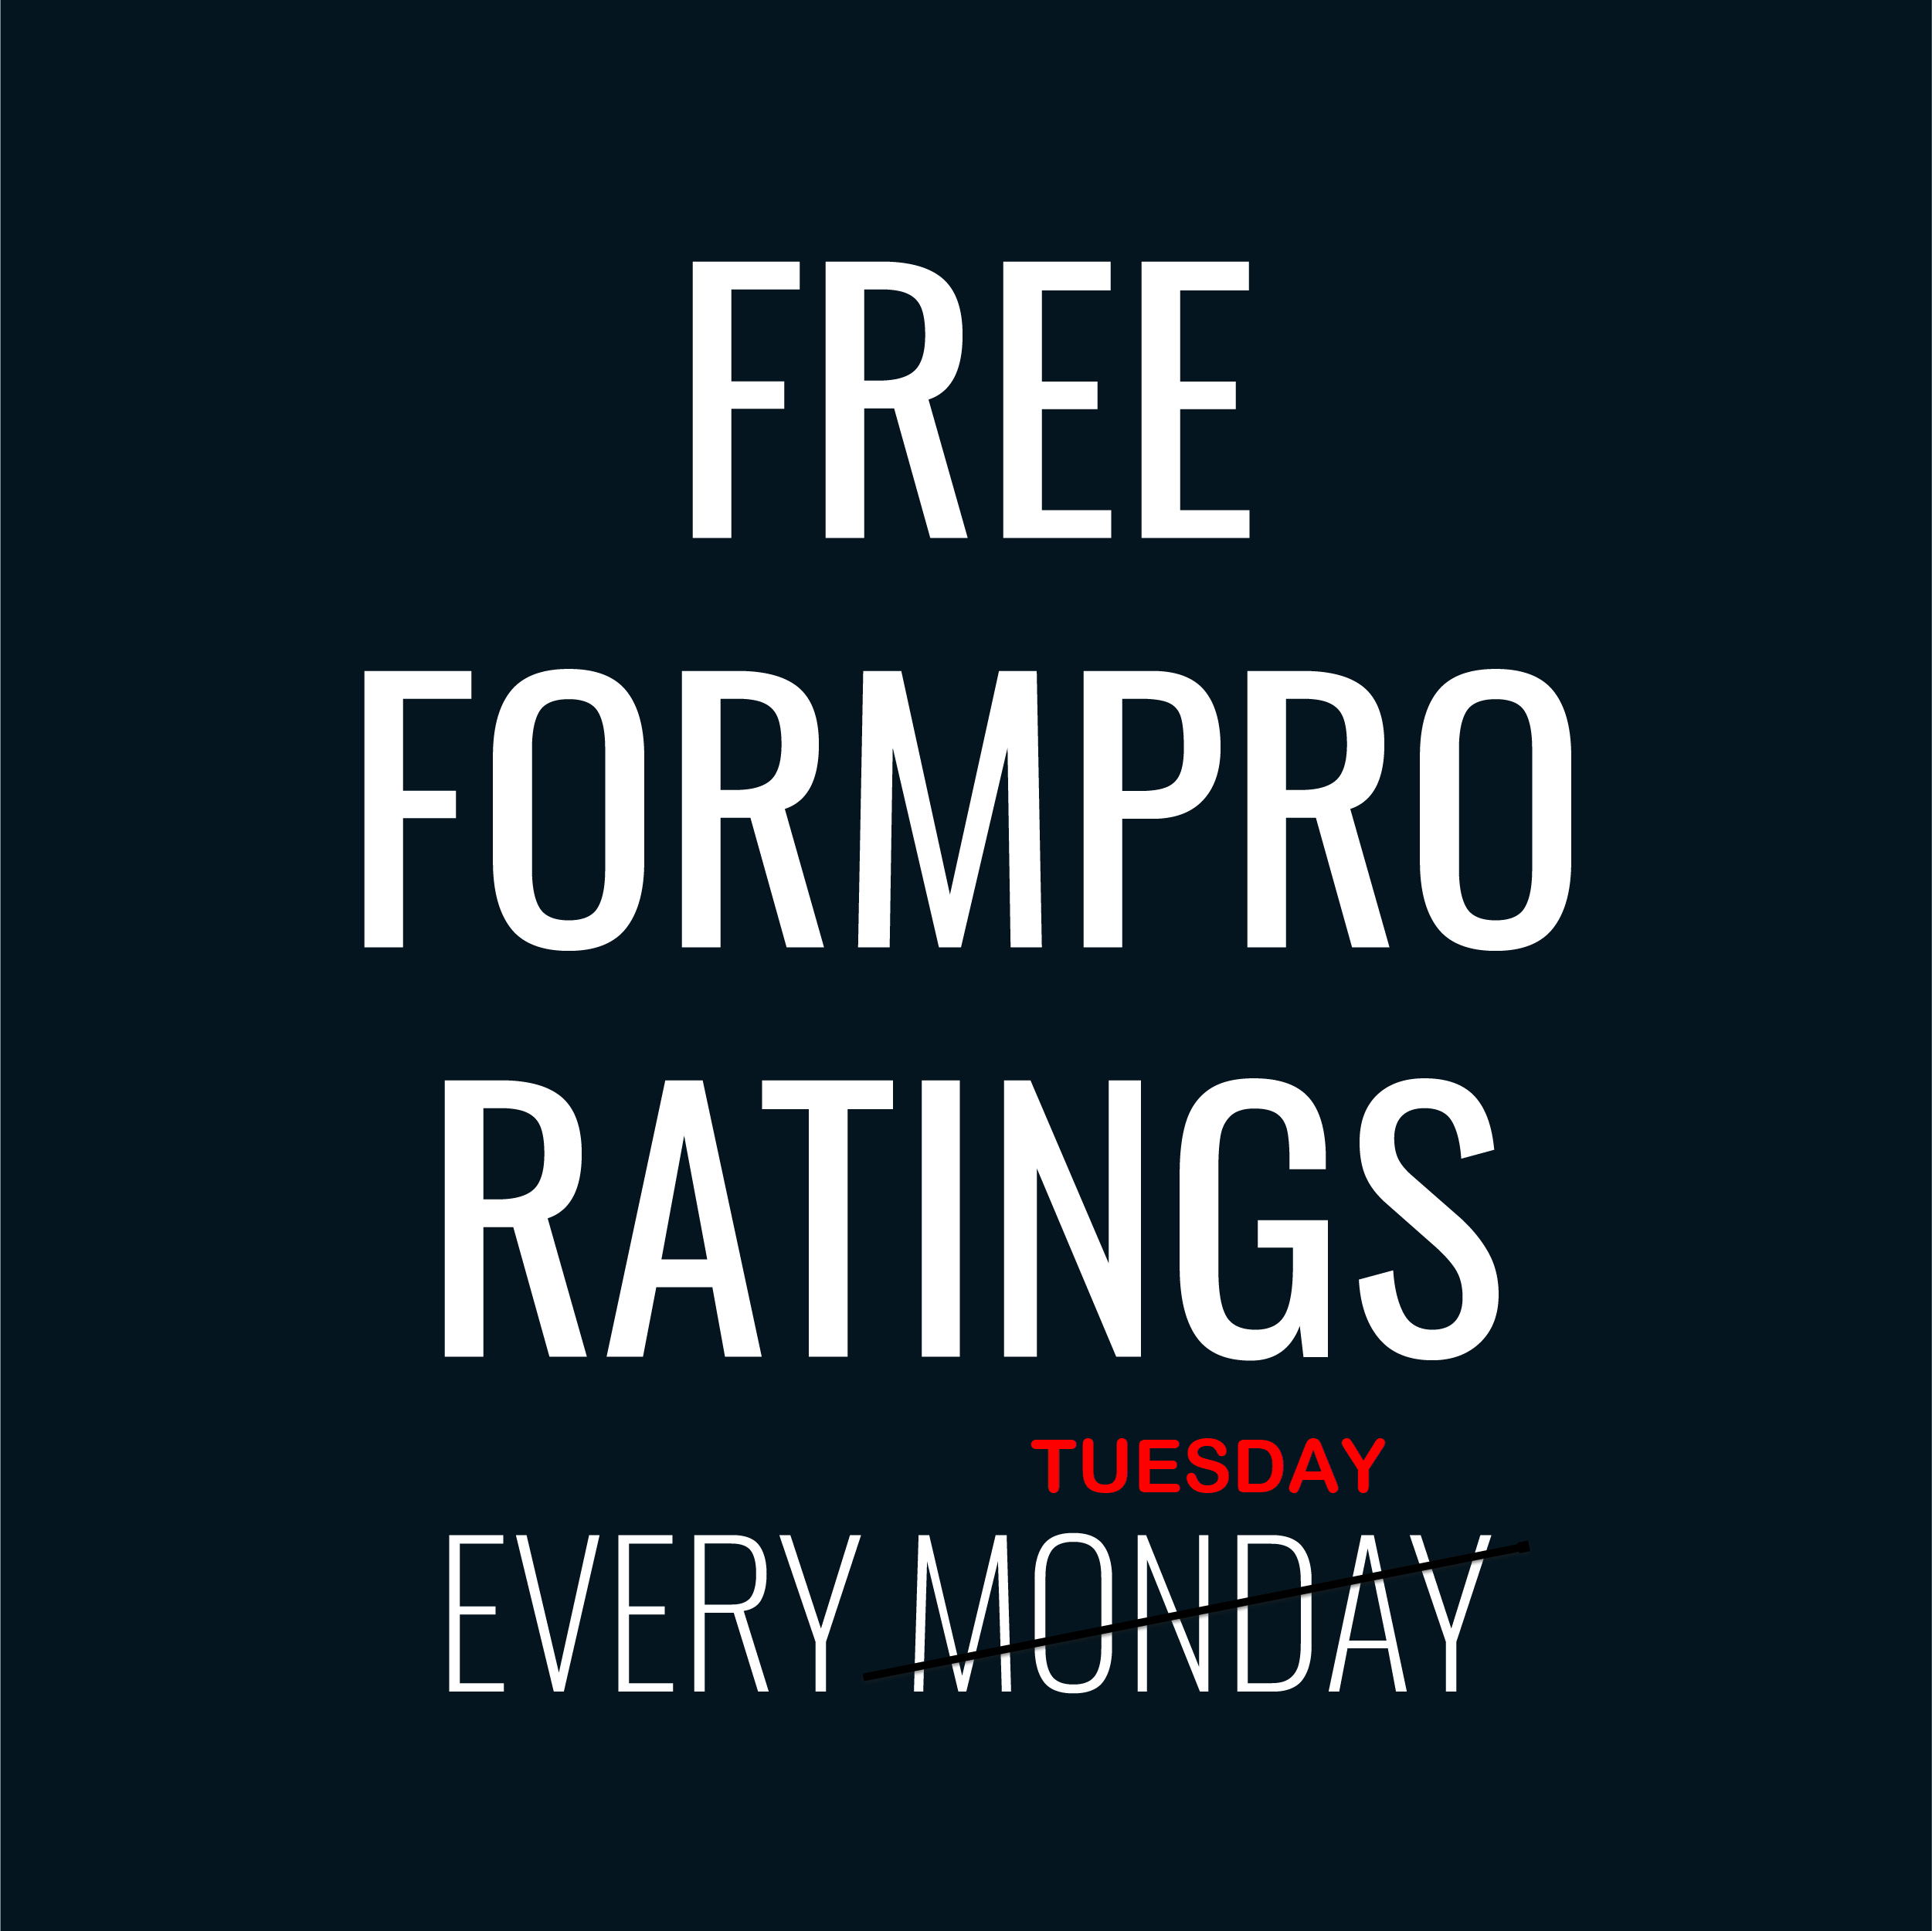 Free Greyhound Ratings Tuesday 16 February 2021